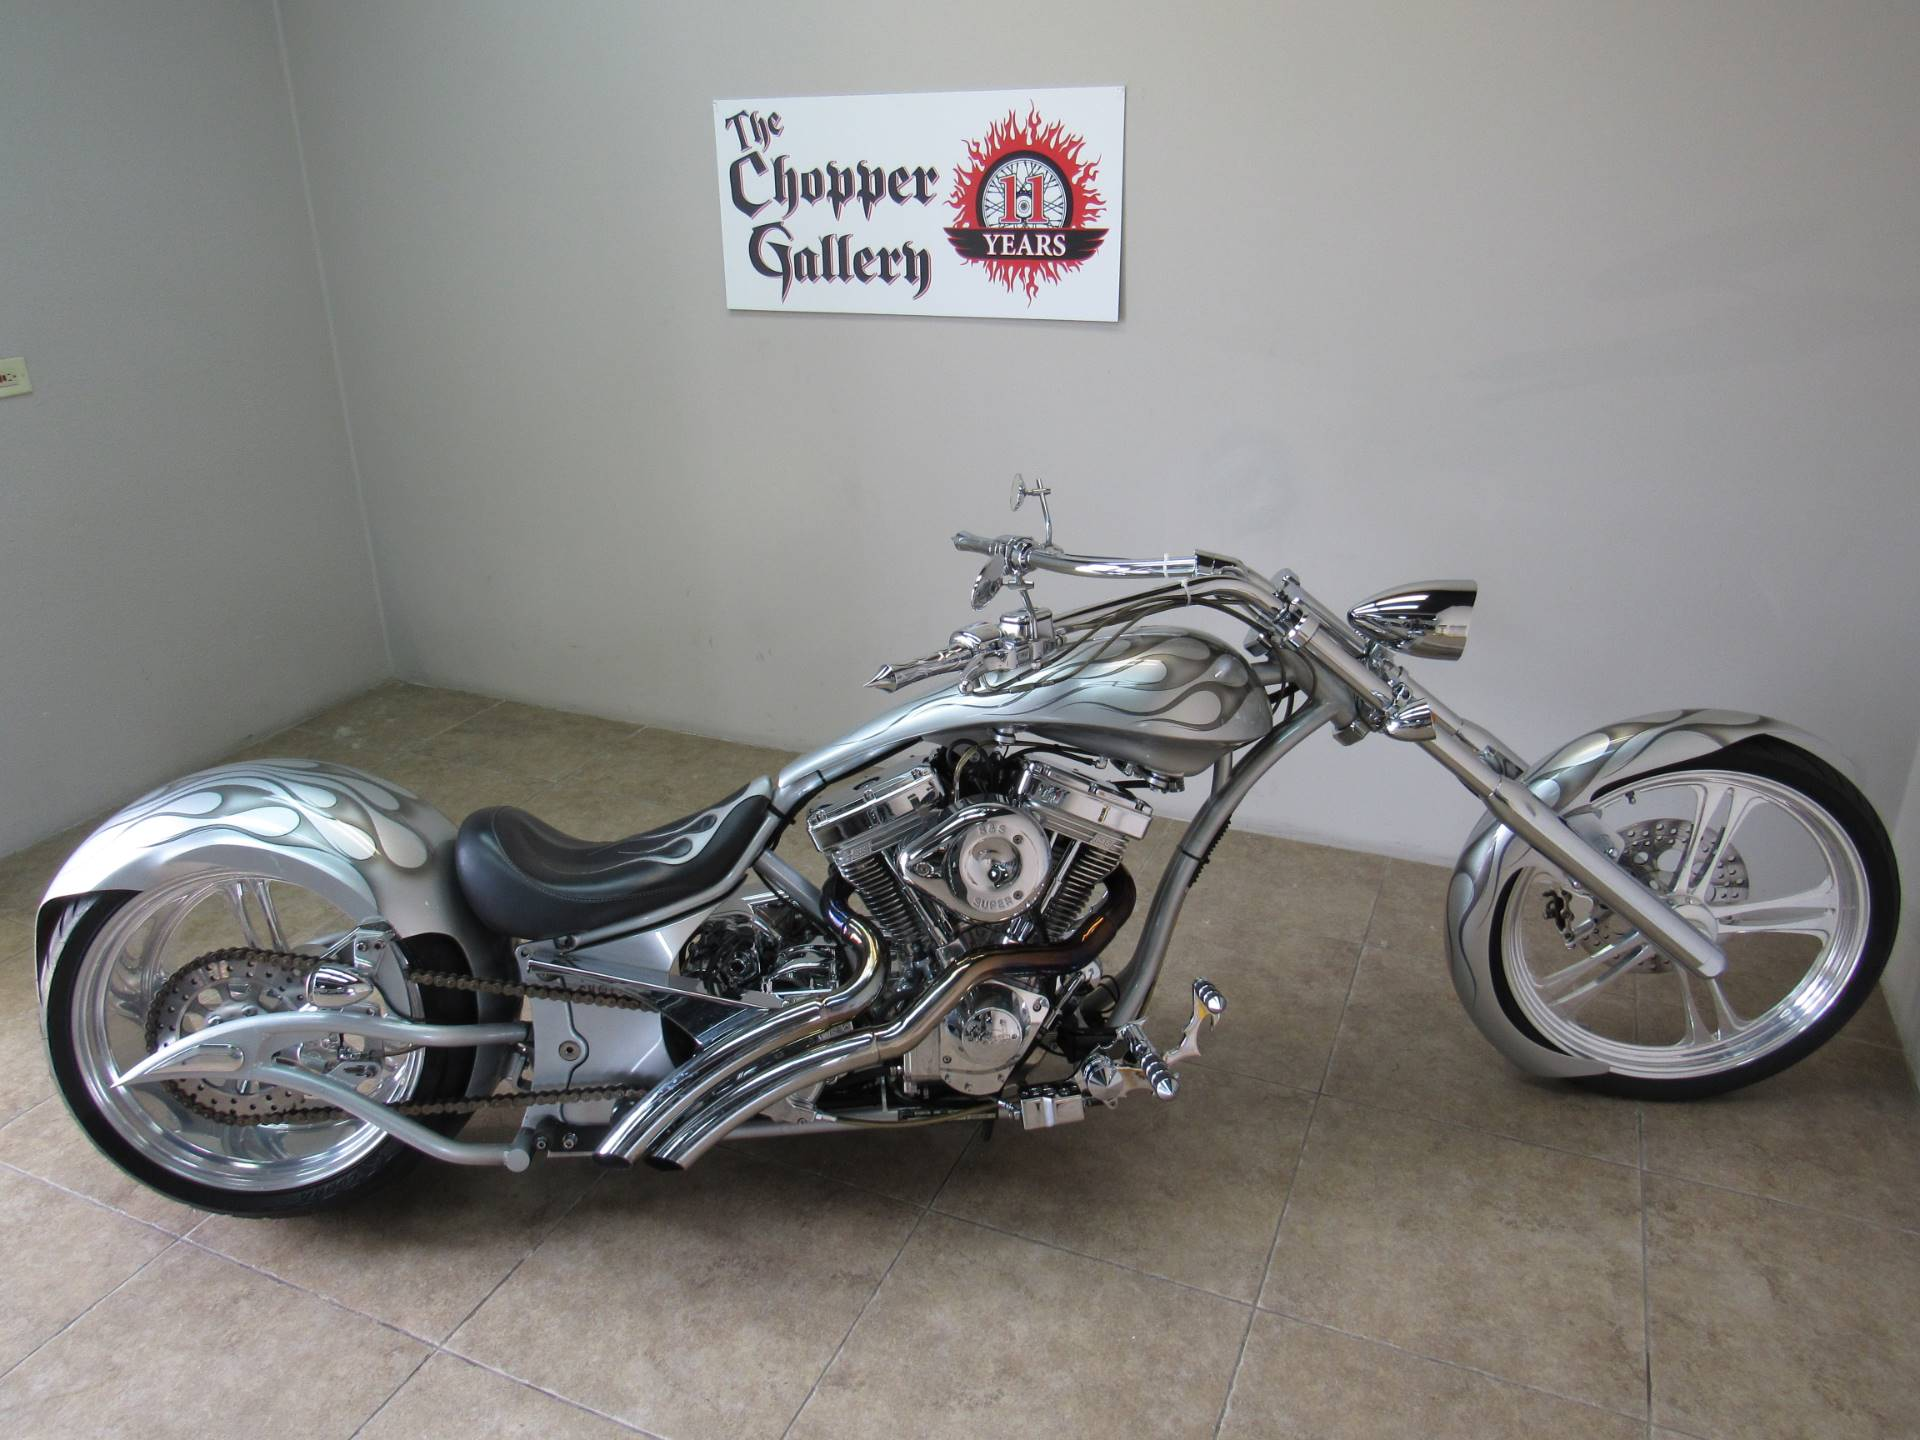 2006 Big Bear Choppers Sled Prostreet (CA) - [SLEDPROSTREET] - Silver in Temecula, California - Photo 1